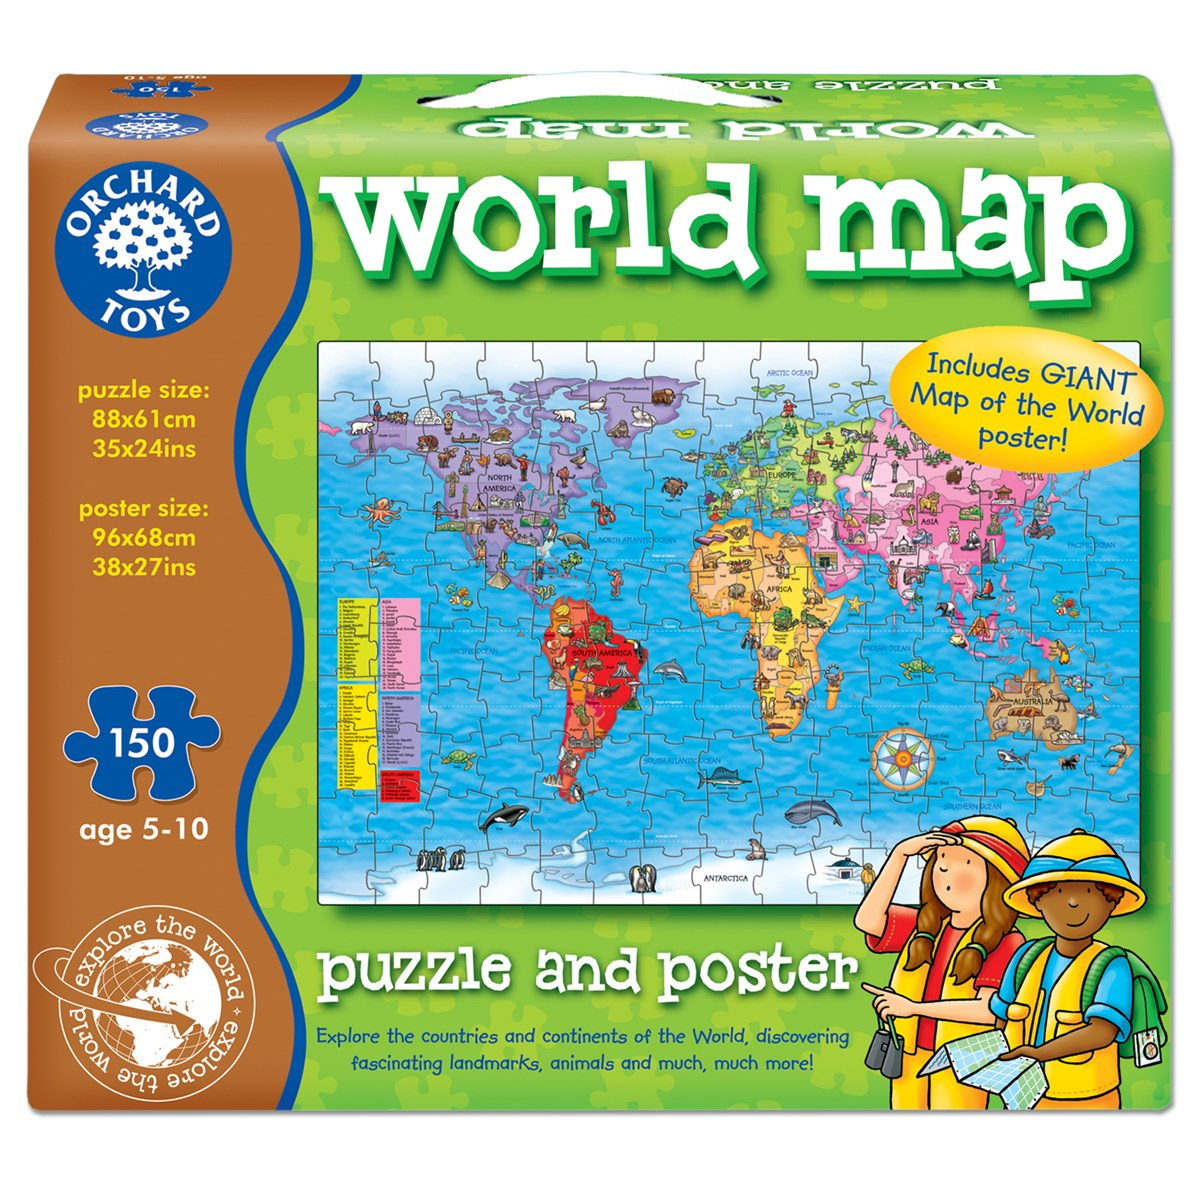 Orchard toys world map puzzle and poster 787799868768 ebay picture 1 of 3 sciox Gallery